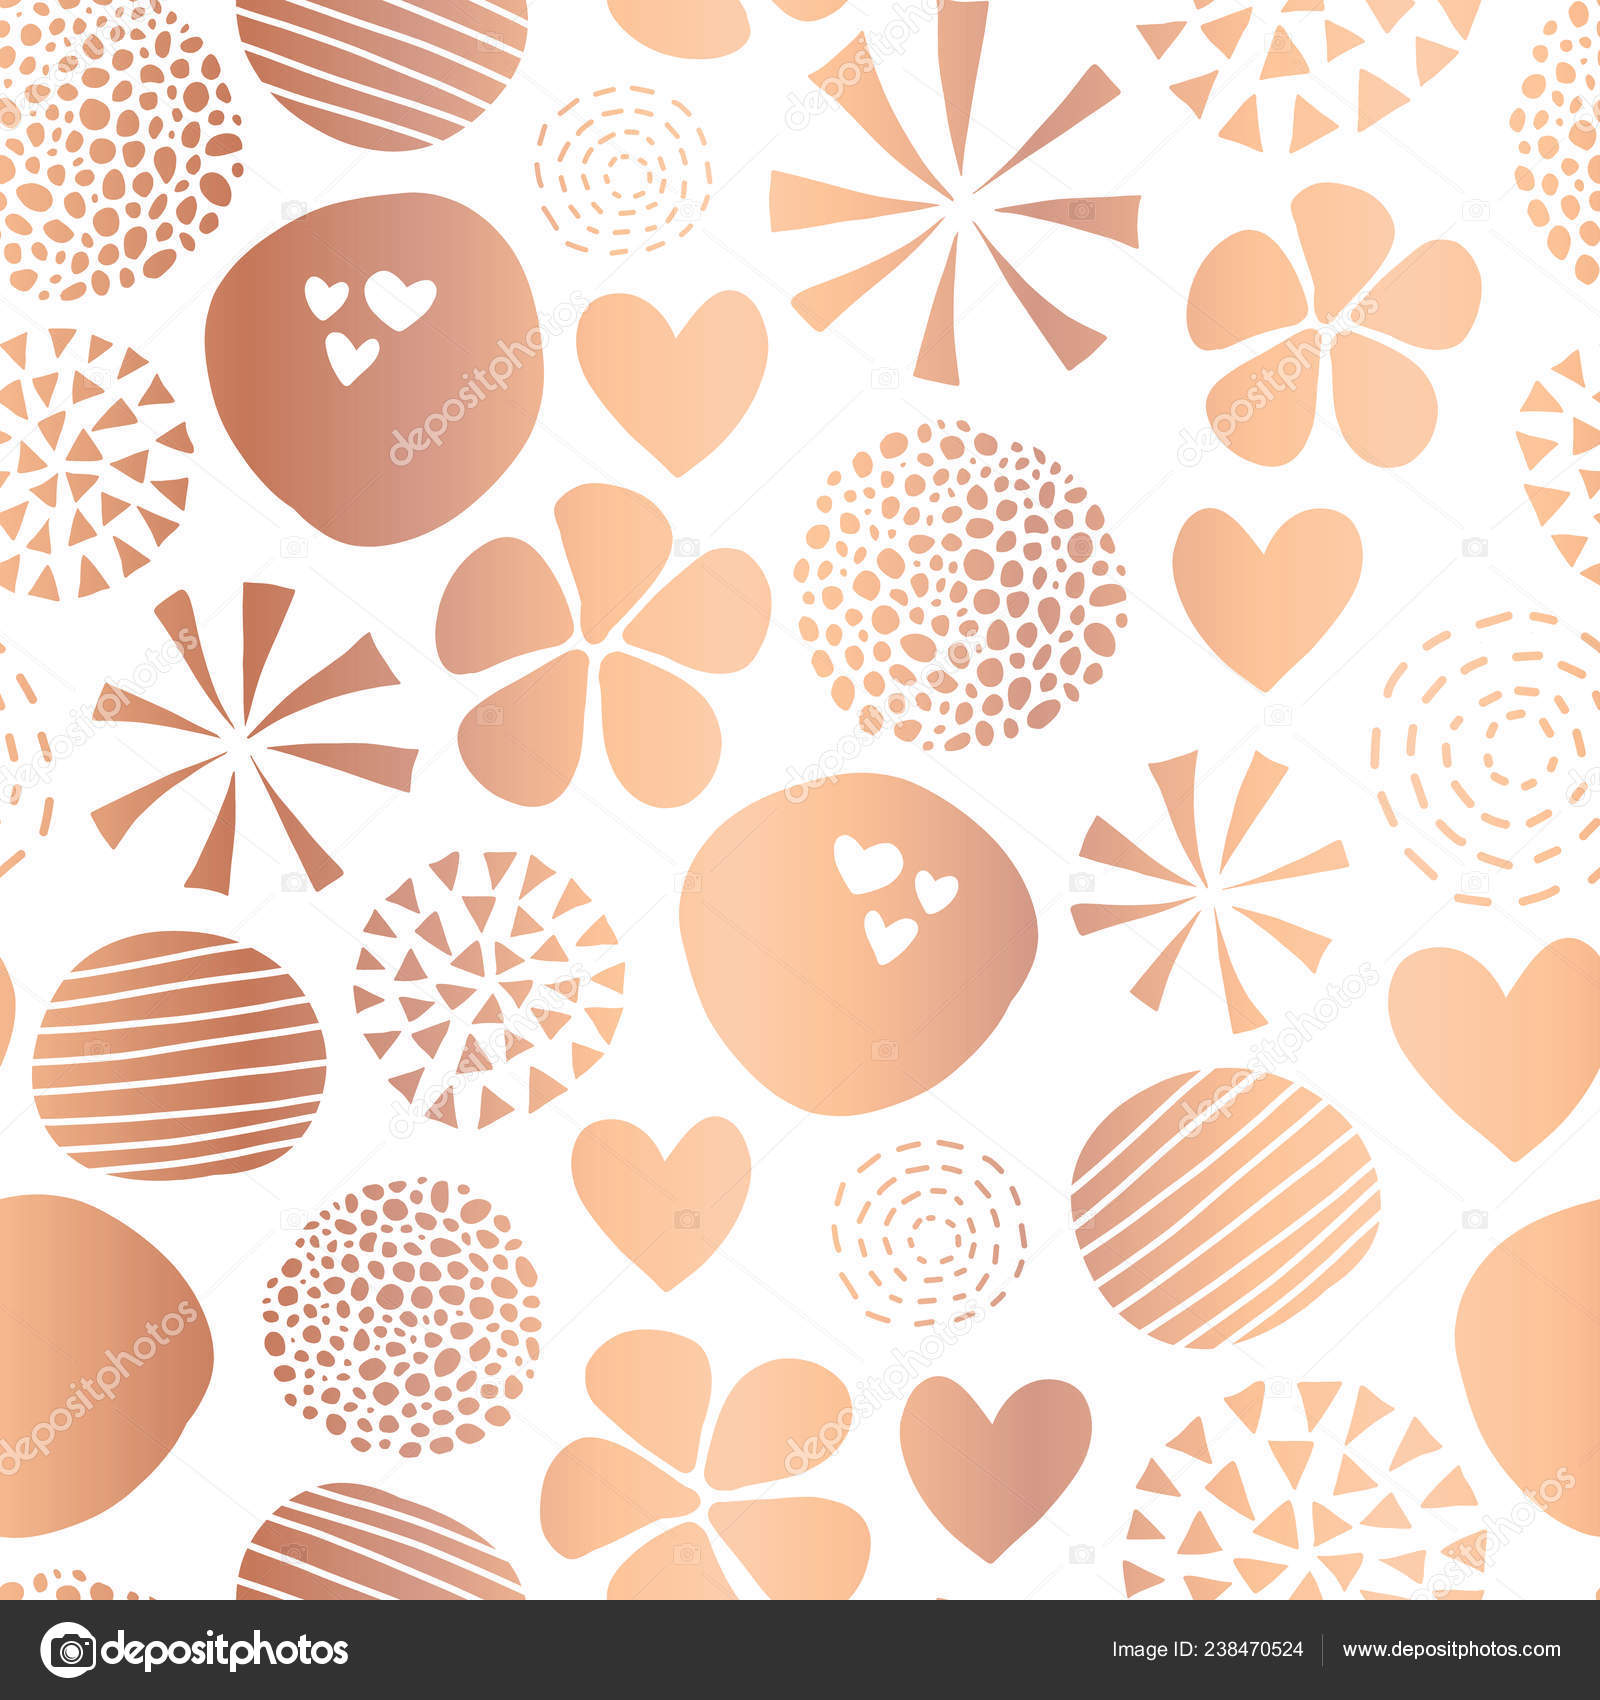 Copper Foil Abstract Seamless Vector Pattern With Flowers